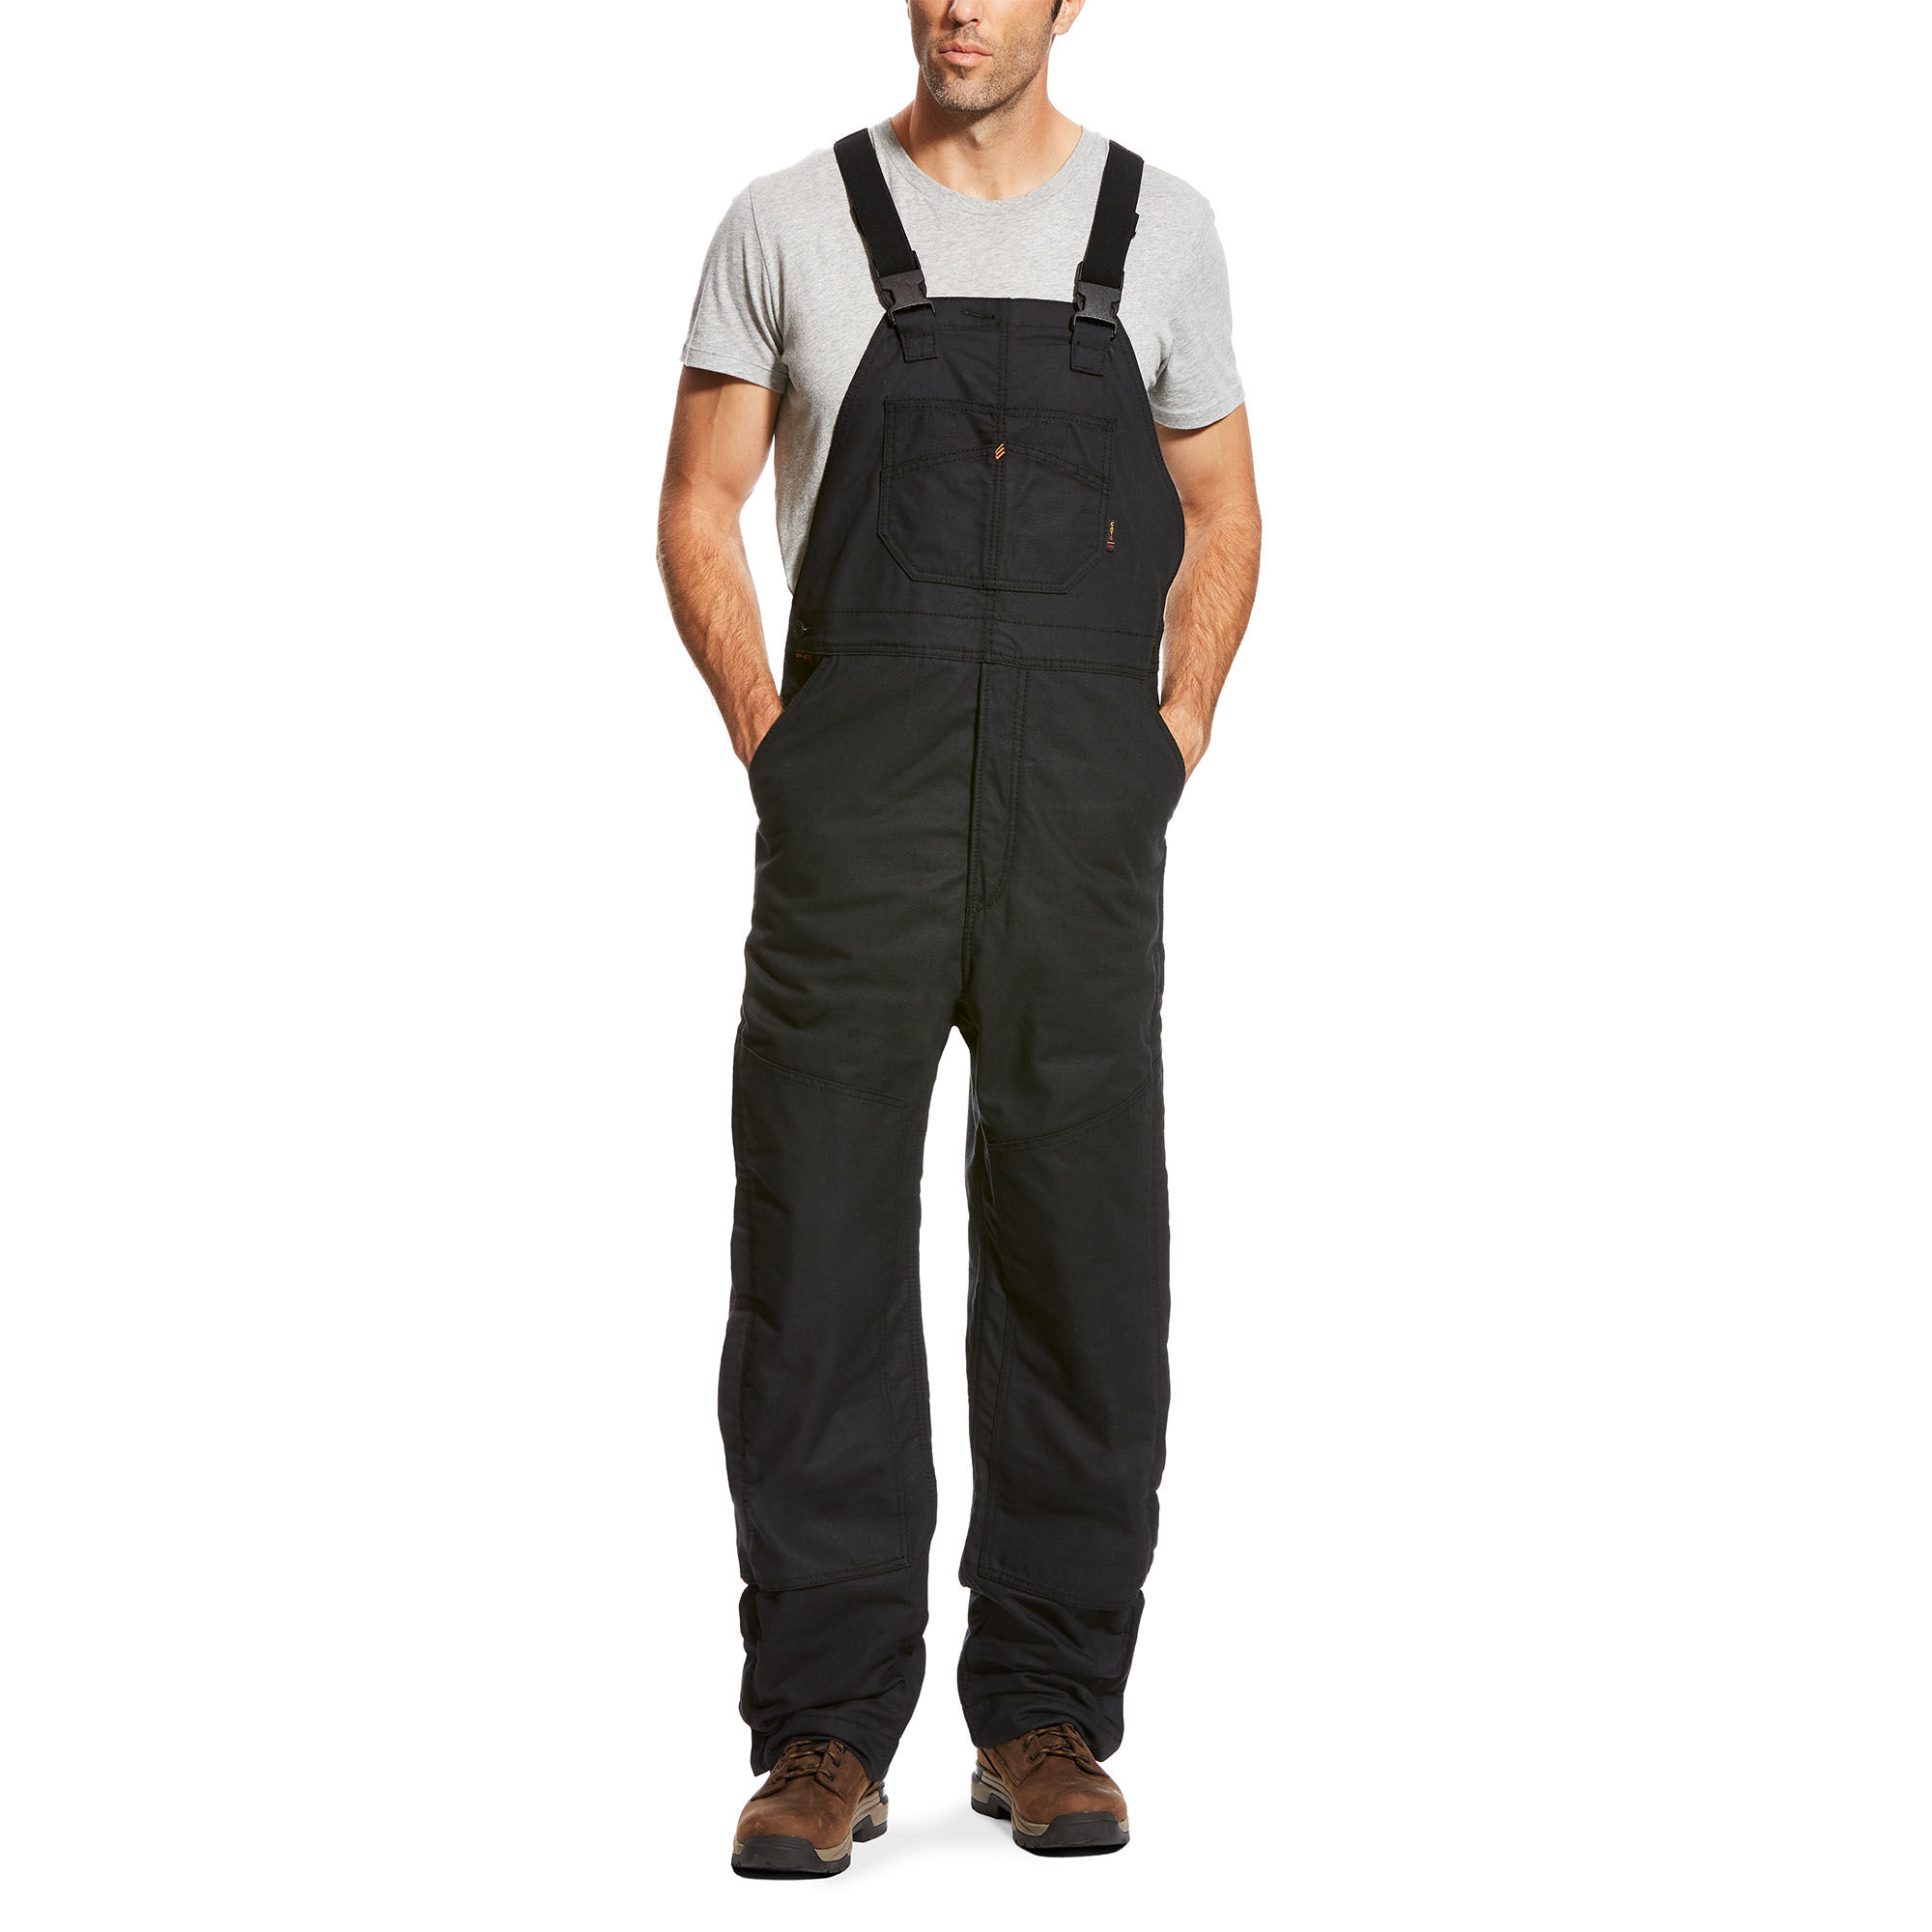 71180d8d760 Images. FR Overall 2.0 Insulated Bib